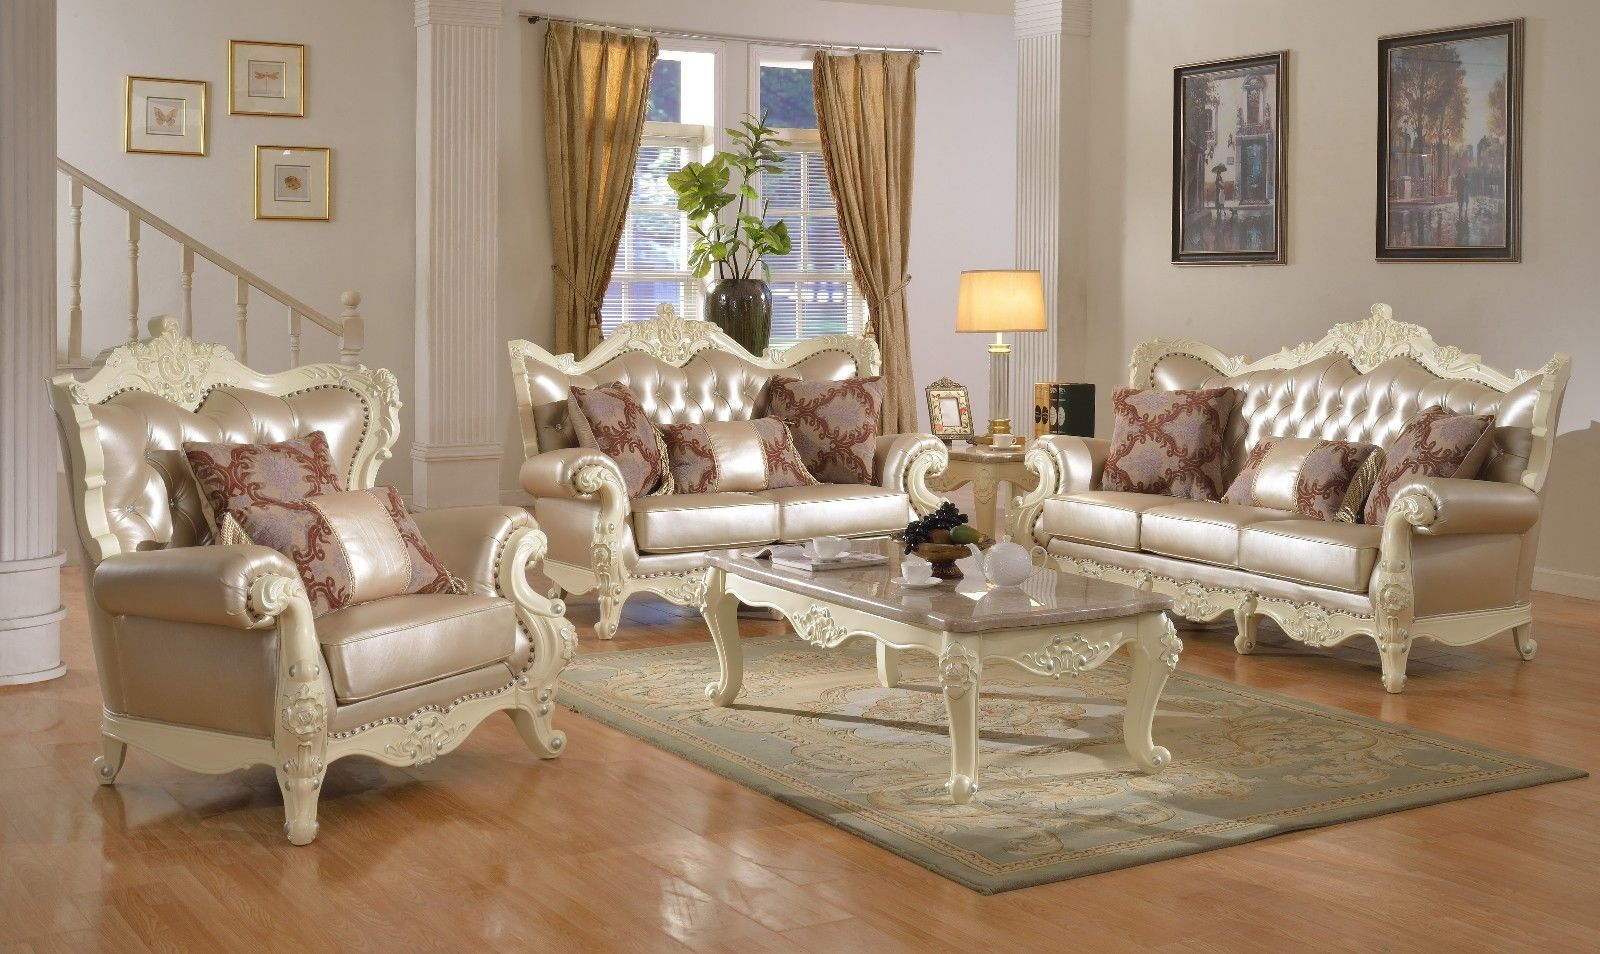 Meridian 674 Bonded Living Room Sofa Rich Pearl White Traditional Style